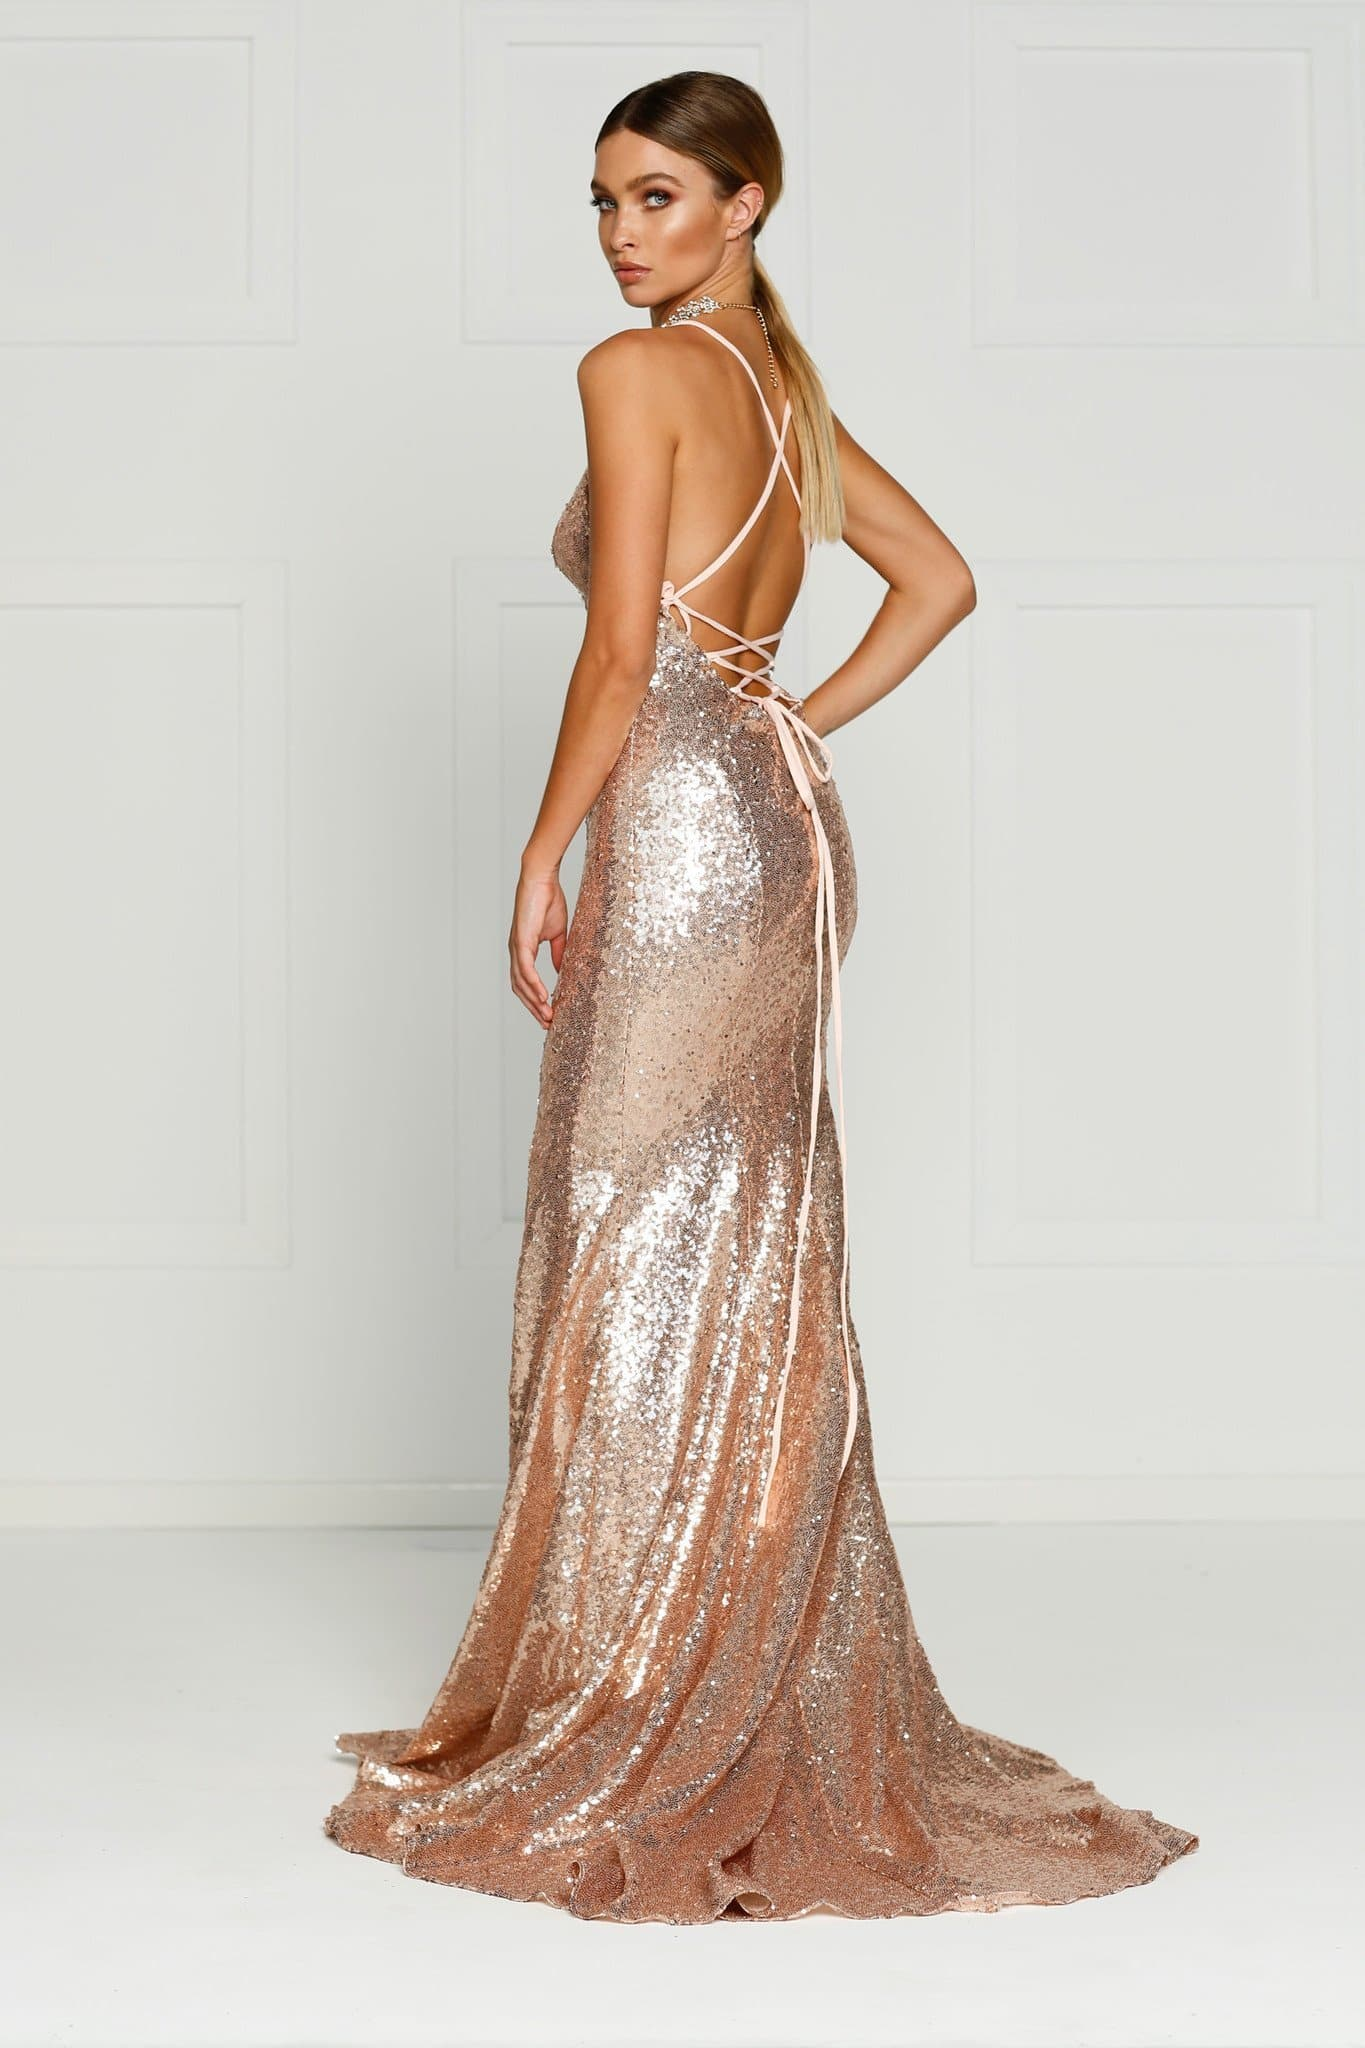 Rose Gold Sequins V Neck Full Length Gown - Kendall Formal Dress